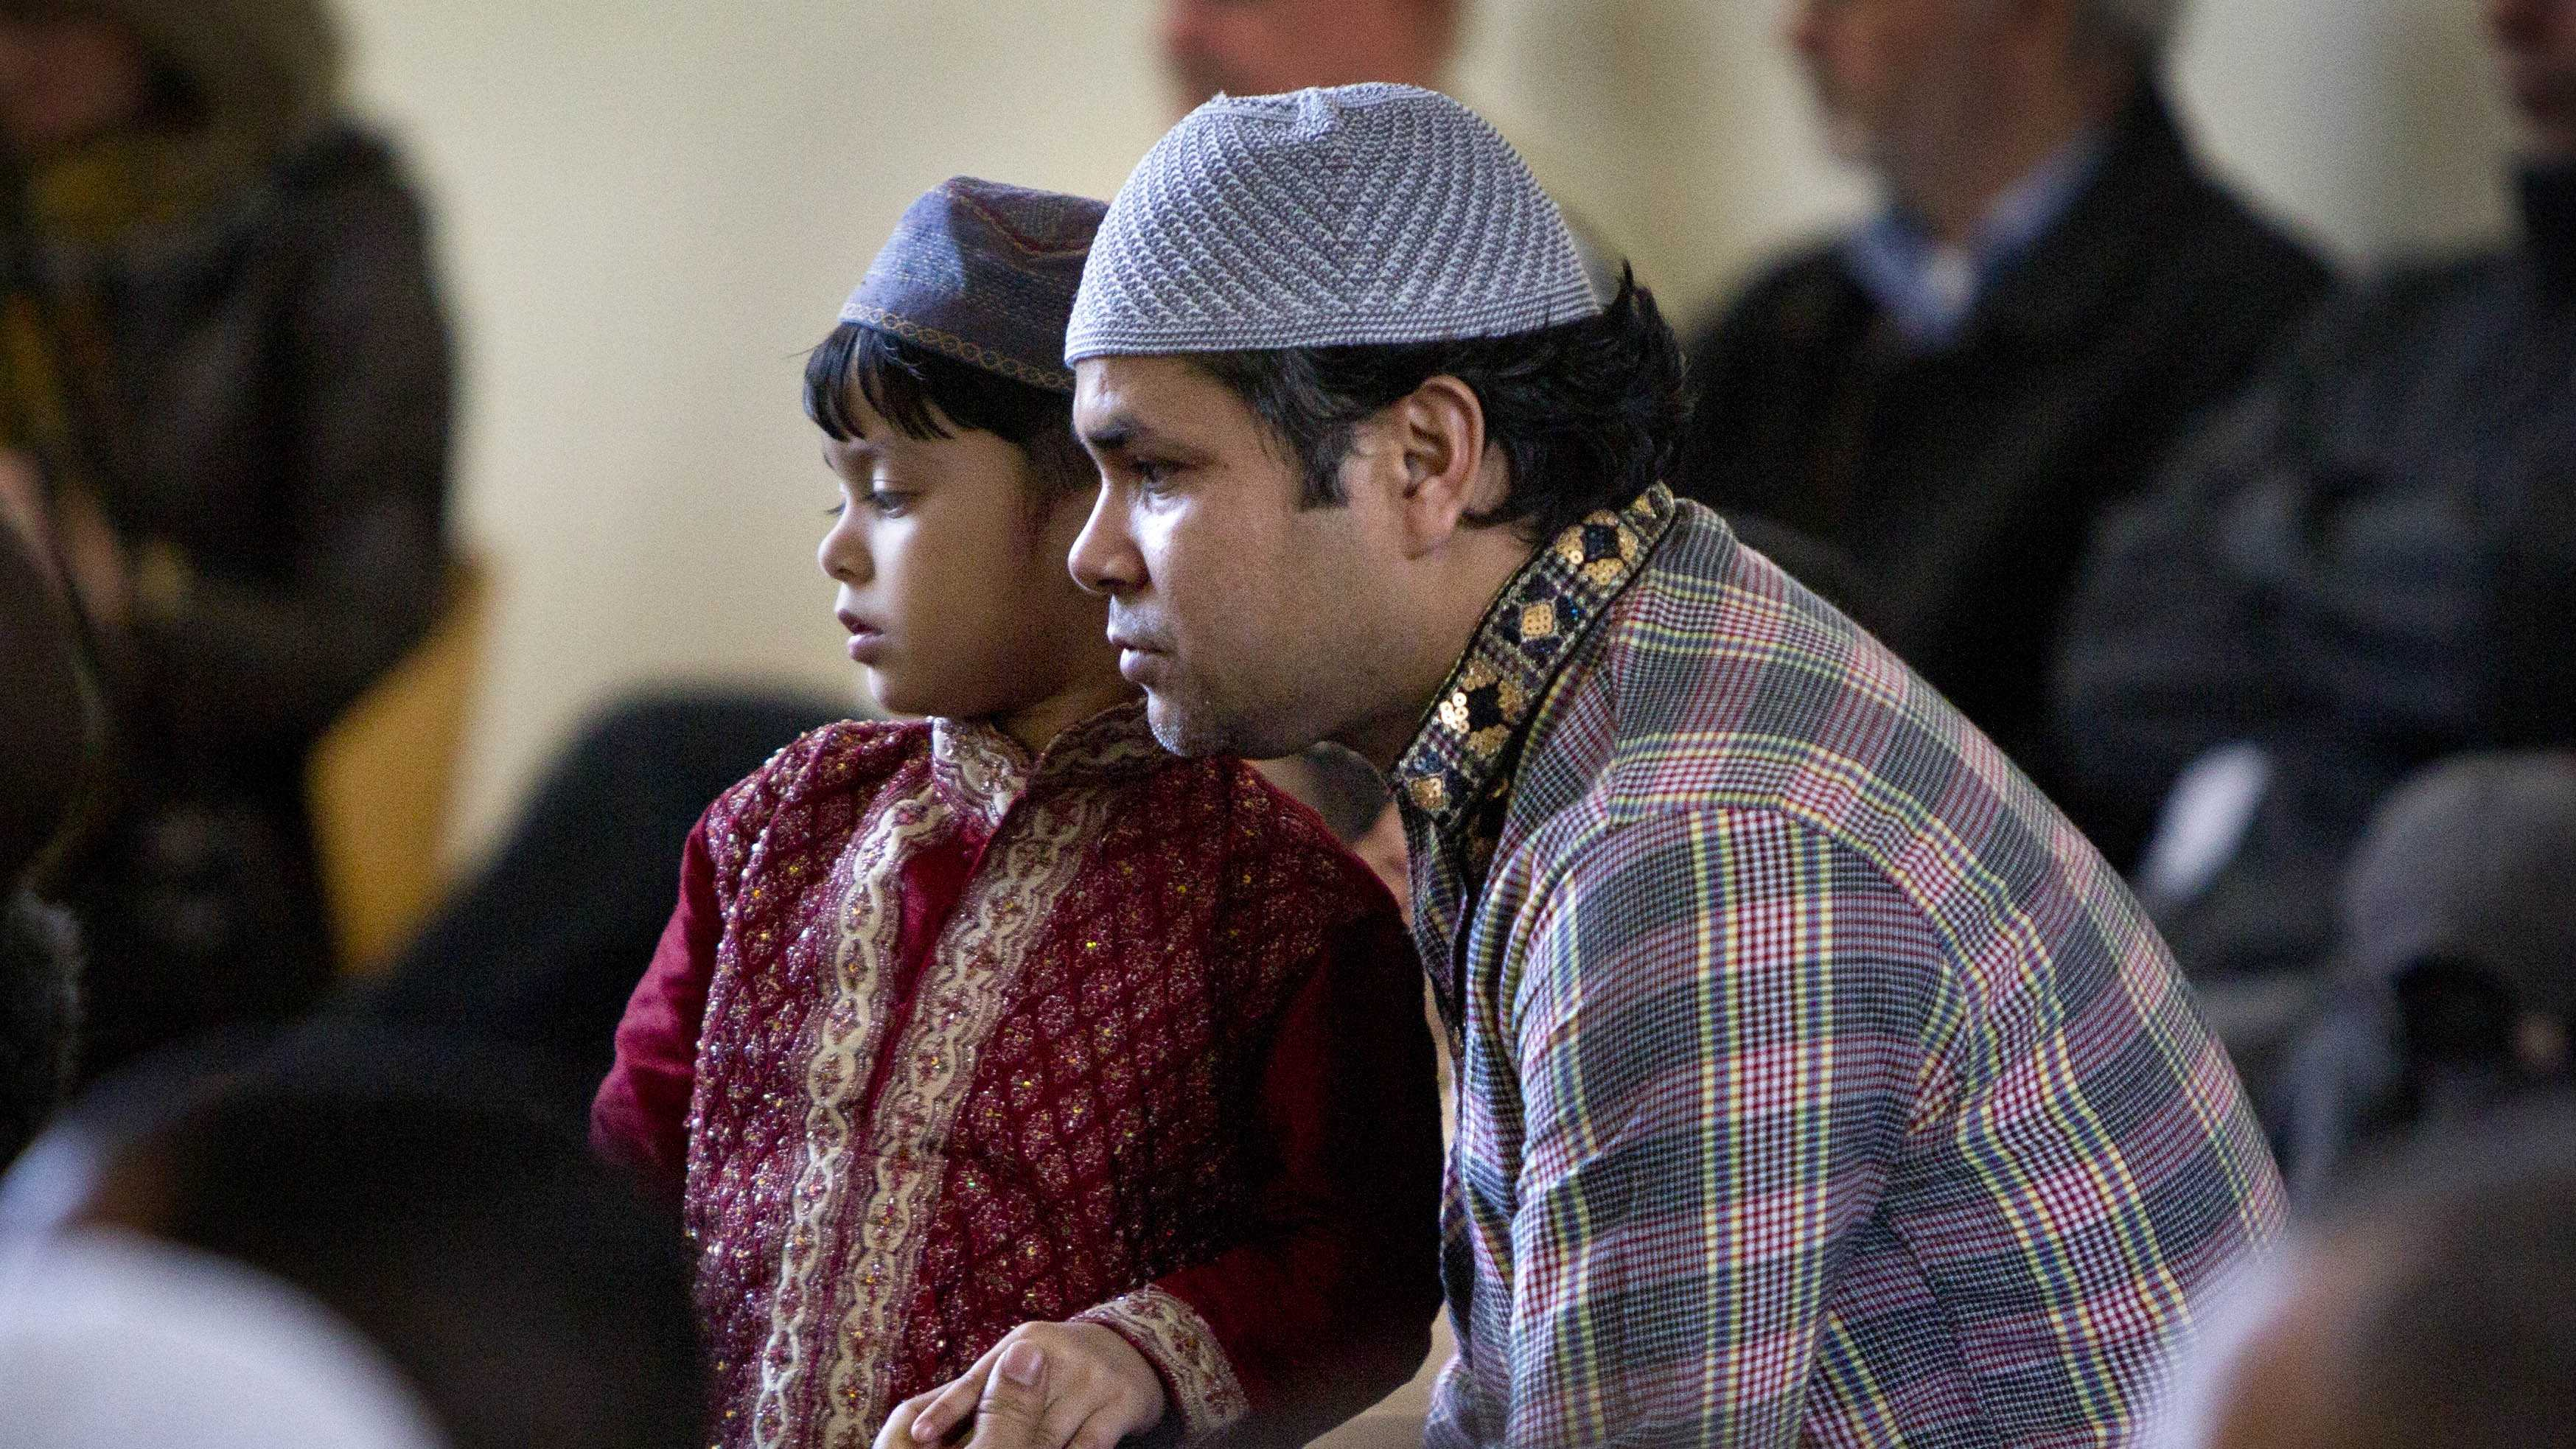 A father and son attend a prayer service at the Islamic Society of Boston mosque, Friday, April 26, 2013, in Cambridge, Mass.